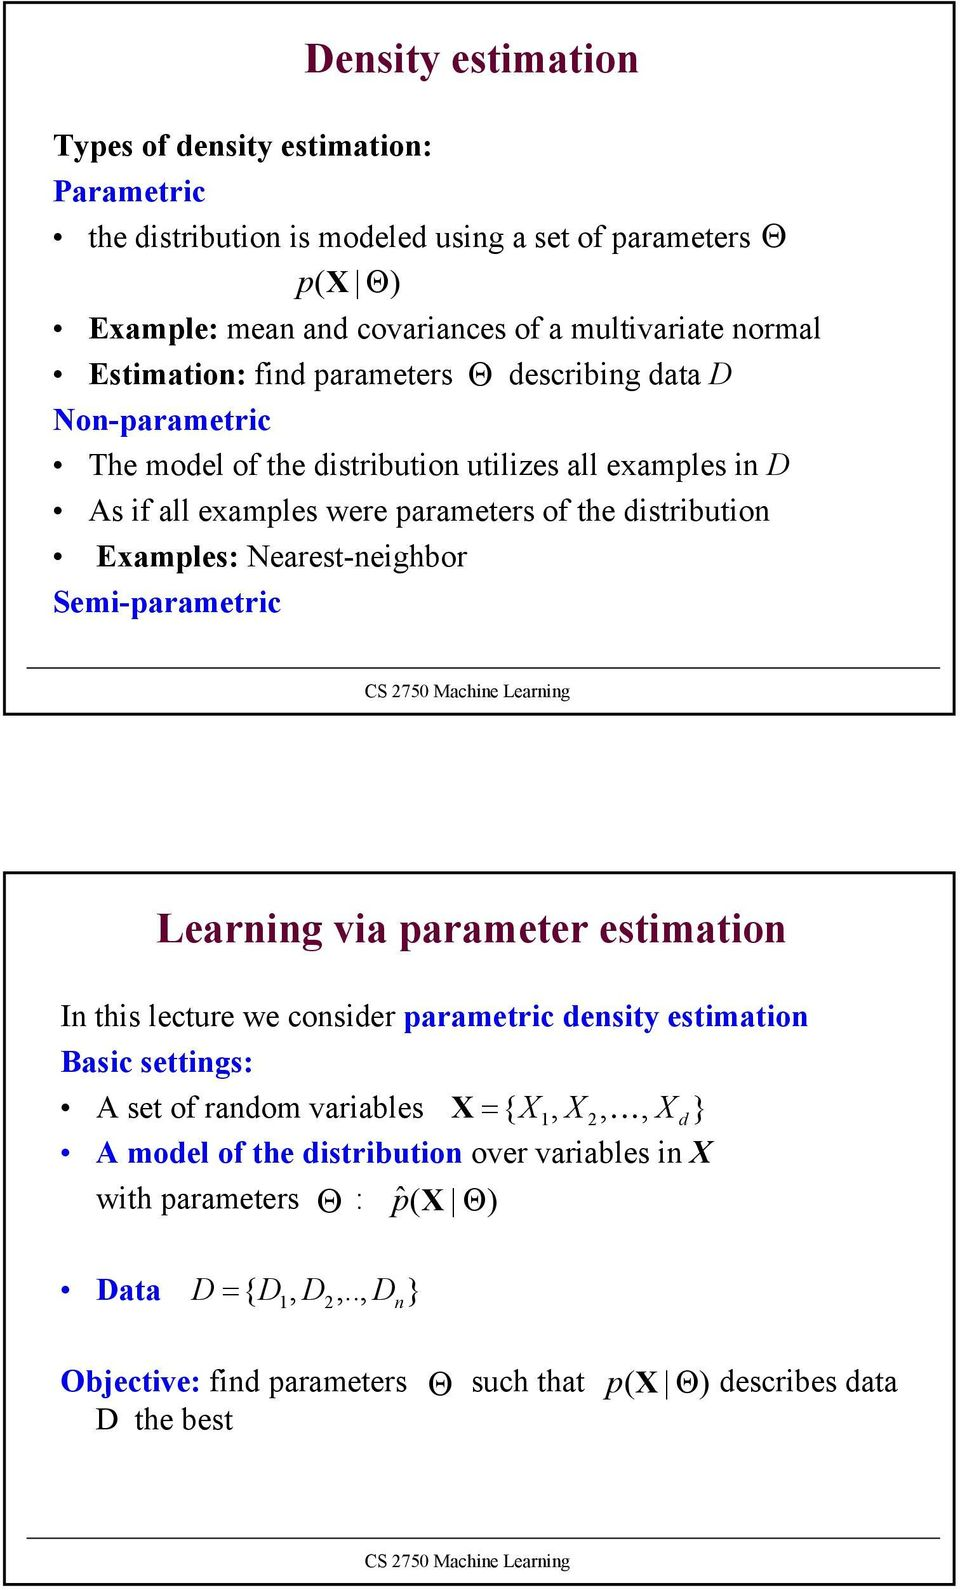 Nearest-neghbor Sem-parametrc Learnng va parameter estmaton In ths lecture we consder parametrc densty estmaton Basc settngs: A set of random varables X = { X1, X 2, K,